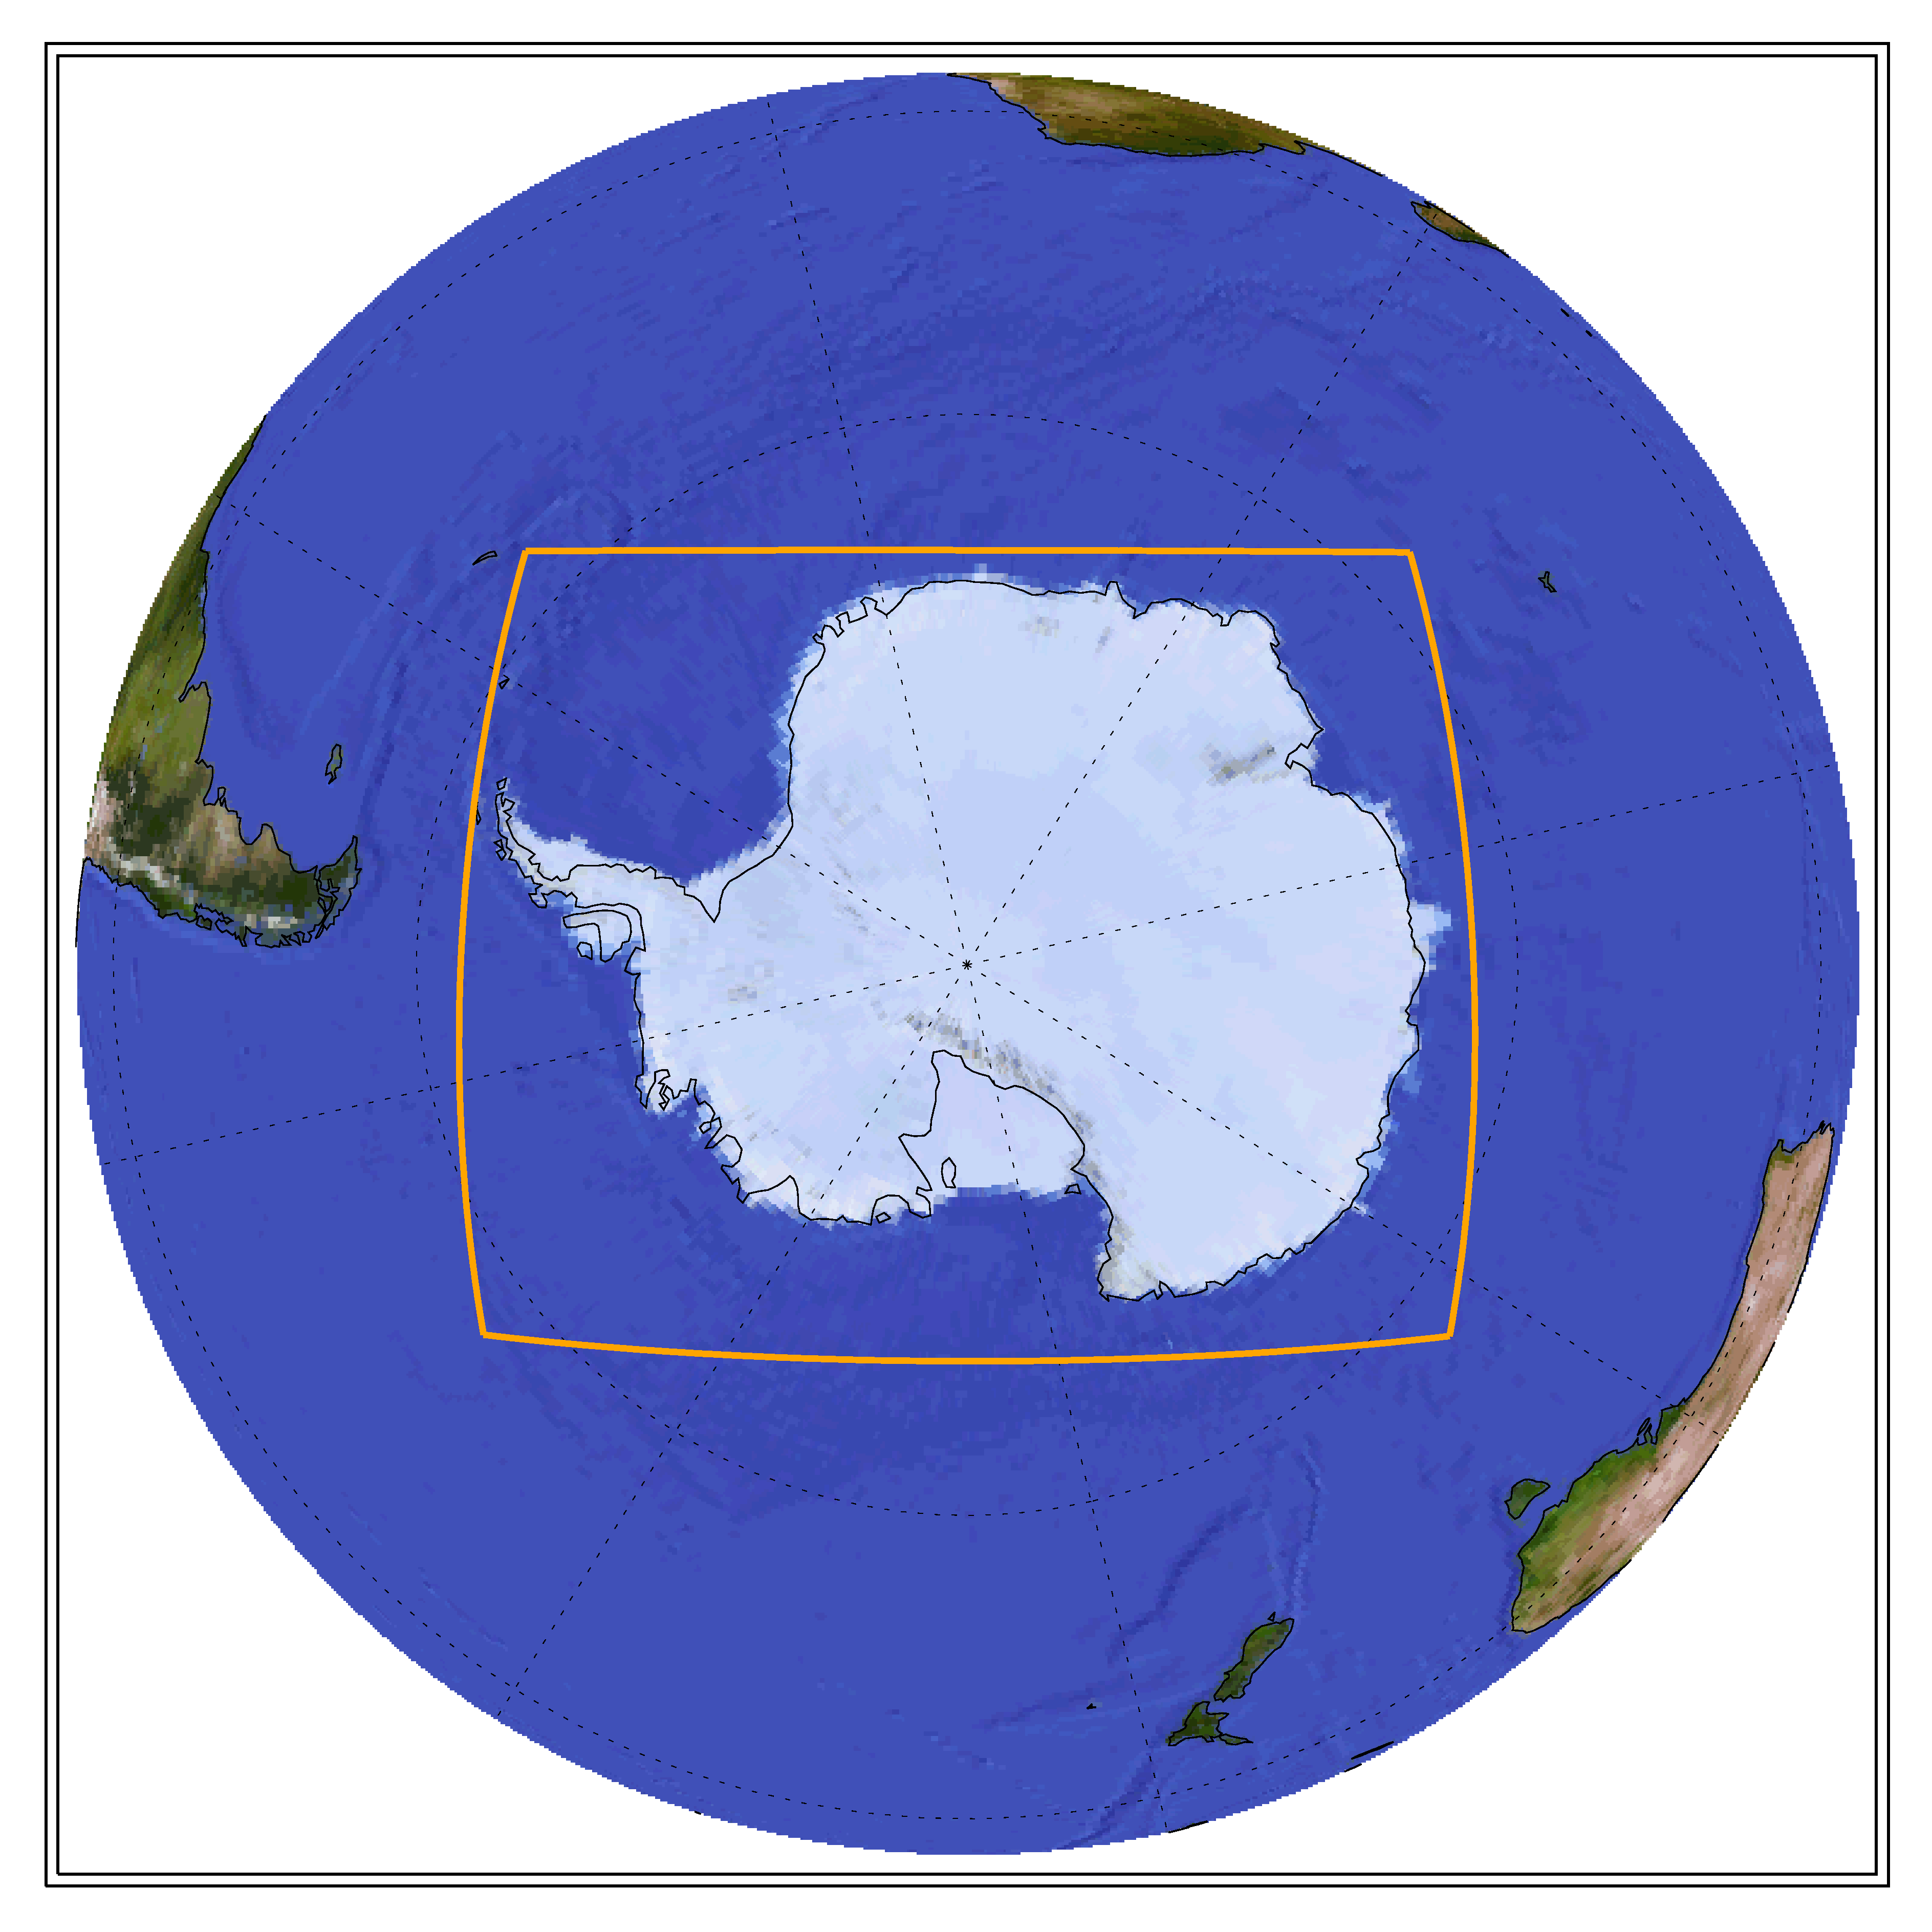 Globe showing the CORDEX domain of Antarctica